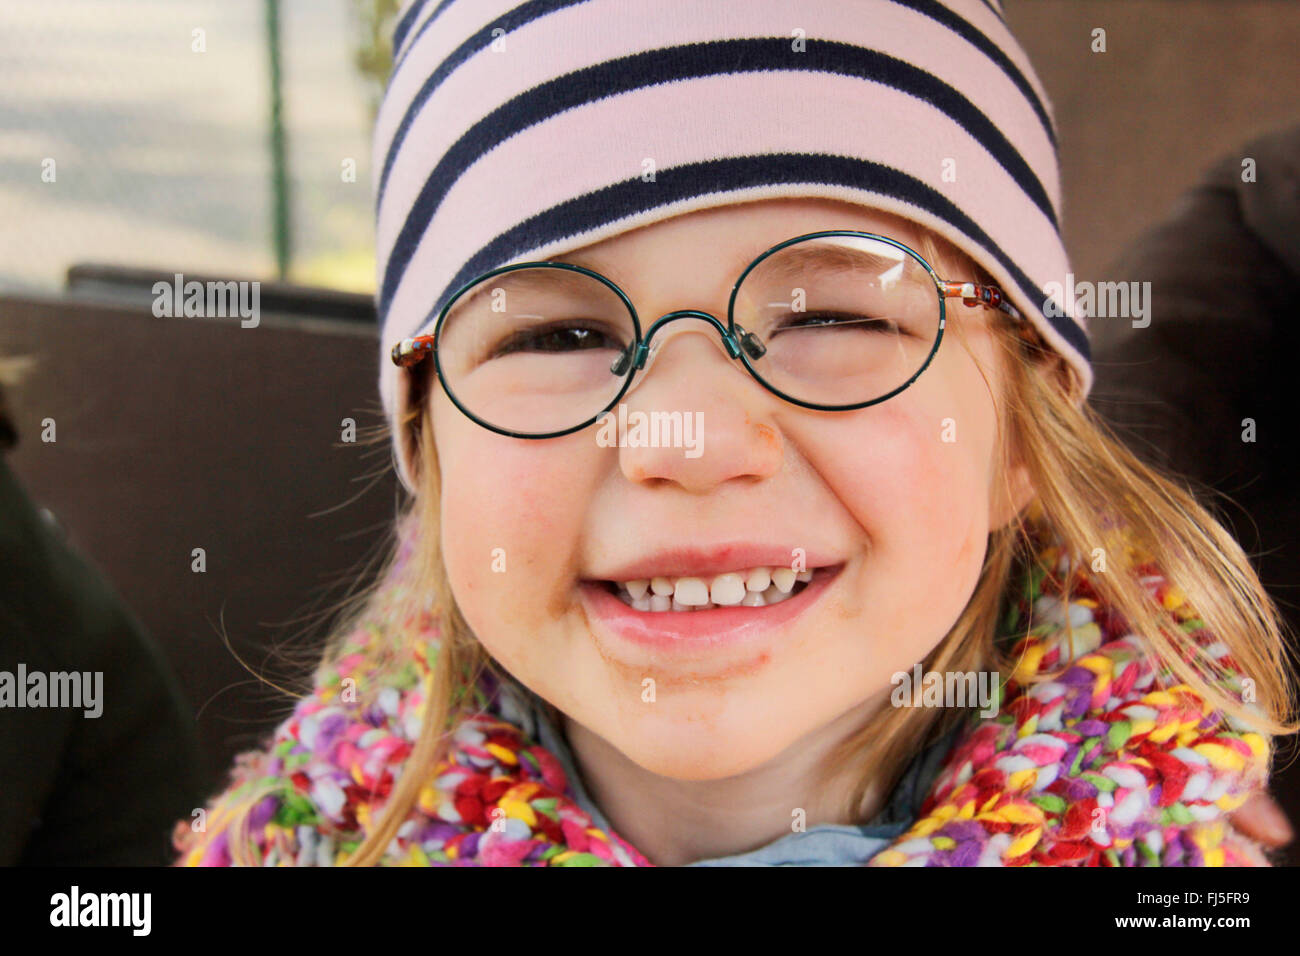 smiling little girl with glasses, portrait of a child - Stock Image